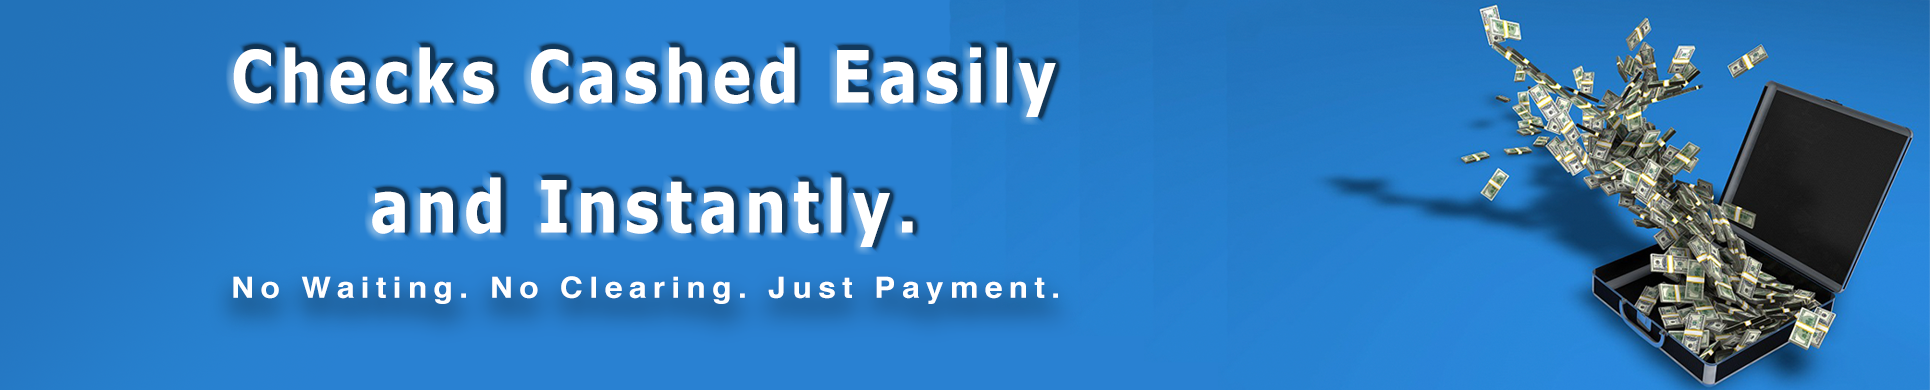 Check Cashing and Financial Services - ACME Check Cashing Service INC